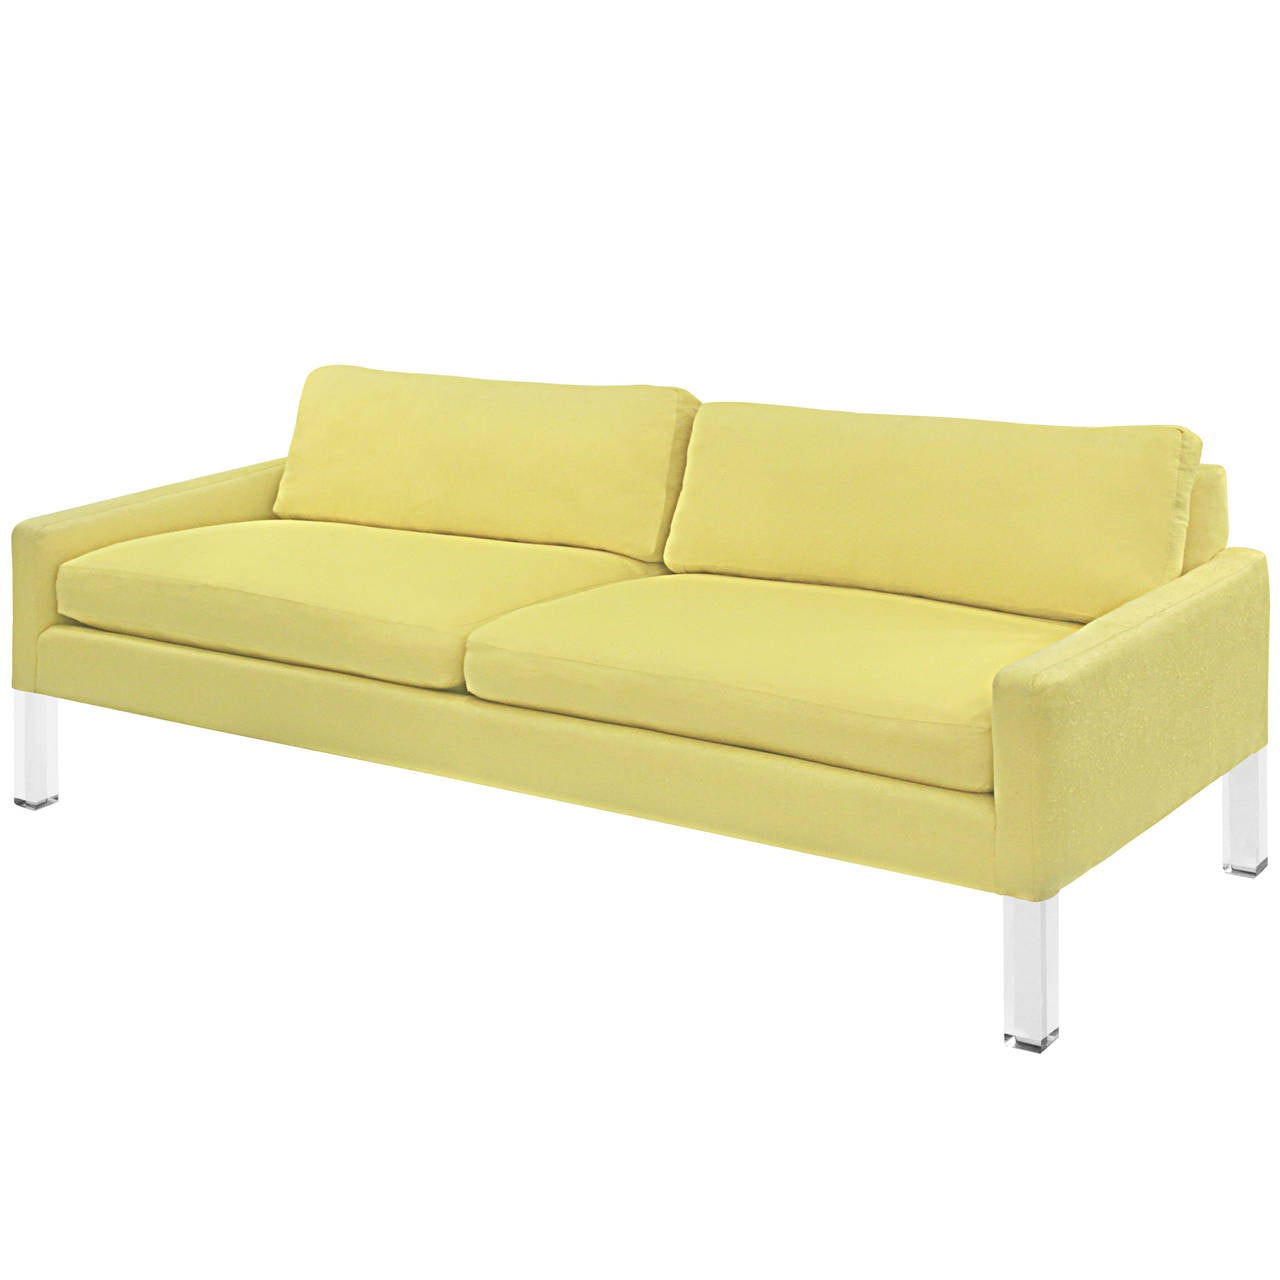 Clean Line Sofa With Solid Lucite Legs For Sale At 1stdibs